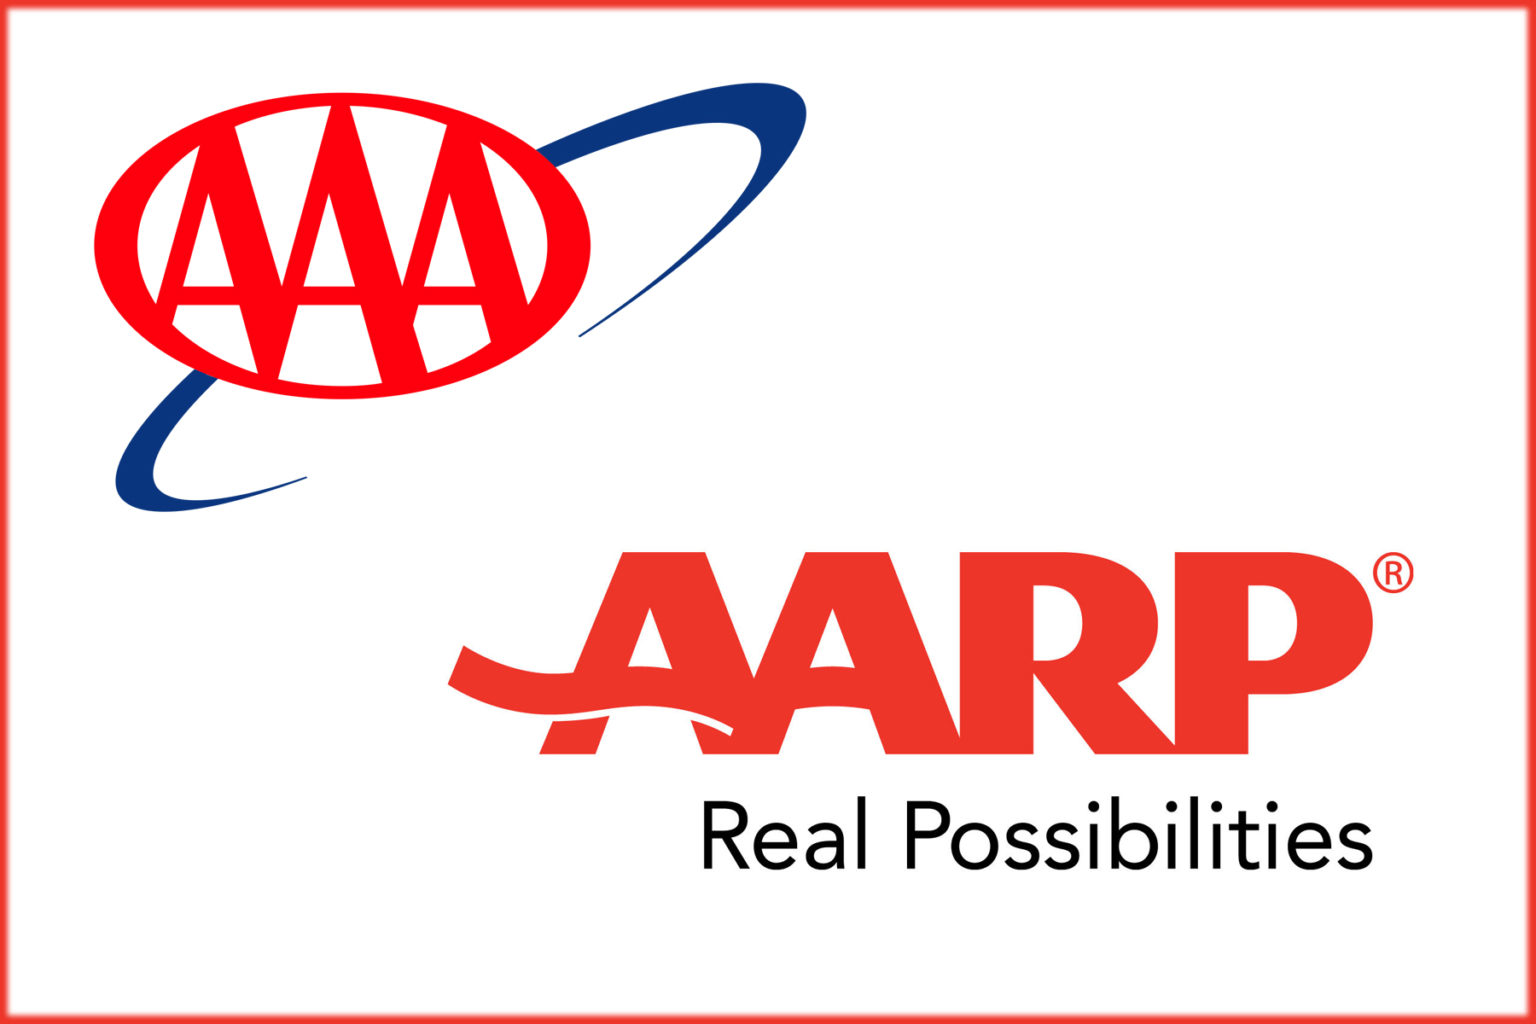 LBR Promotion AAA AARP